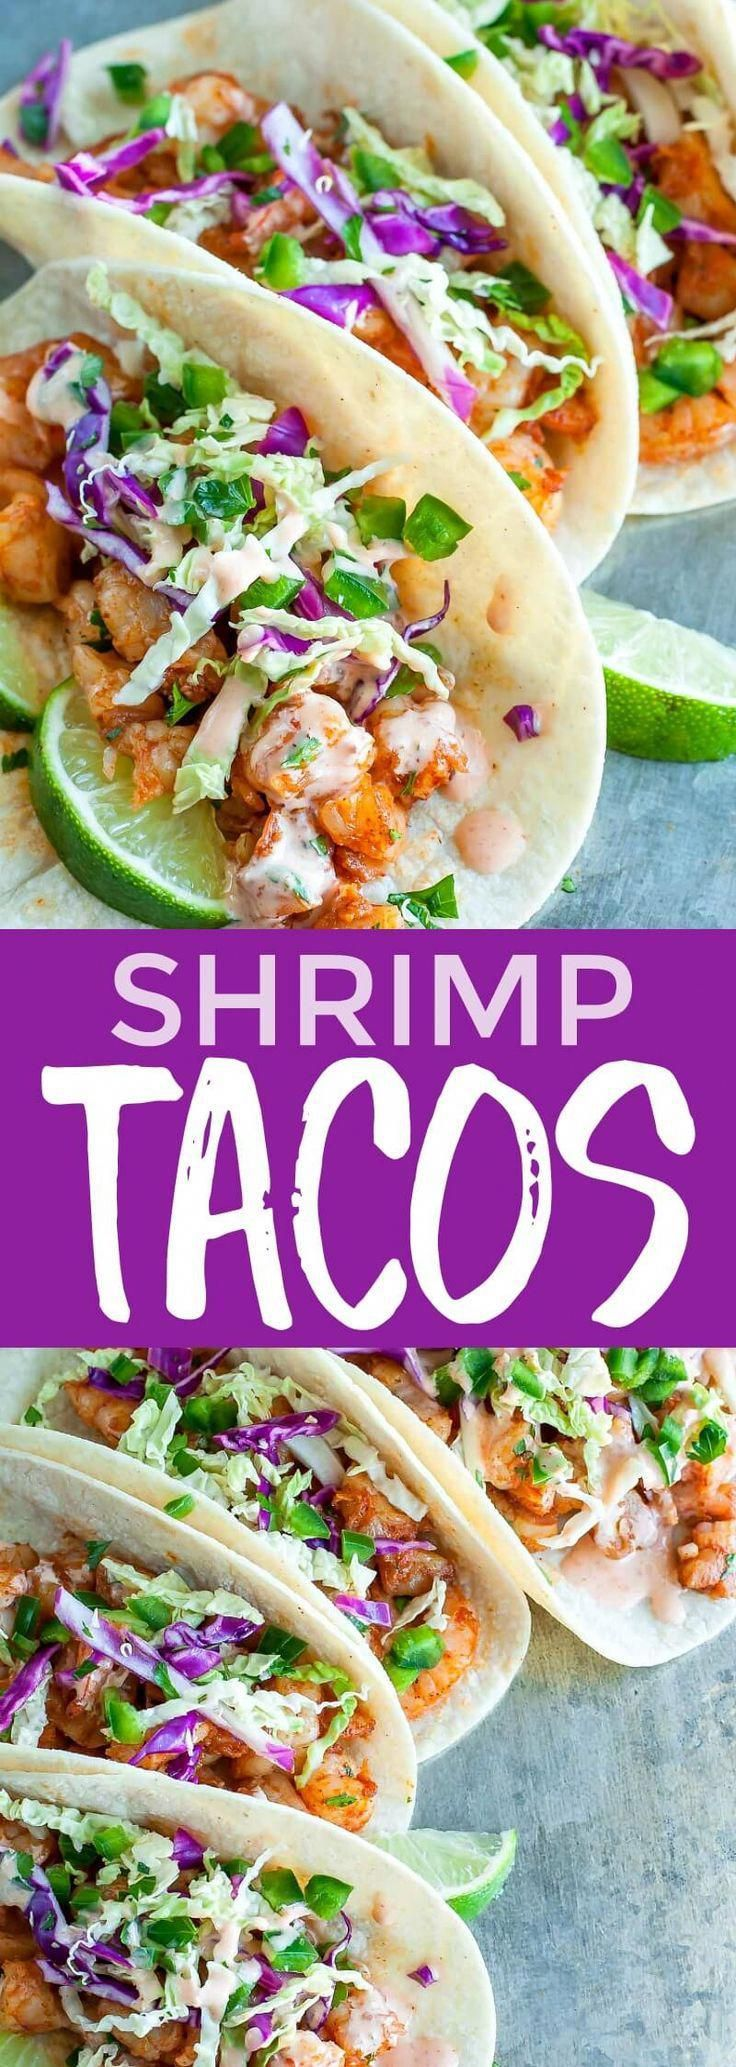 These Shrimp Tacos are fast, flavorful, and topped with a zesty Cilantro Lime Slaw that will rock yours socks! These spicy sriracha shrimp tacos are the best!